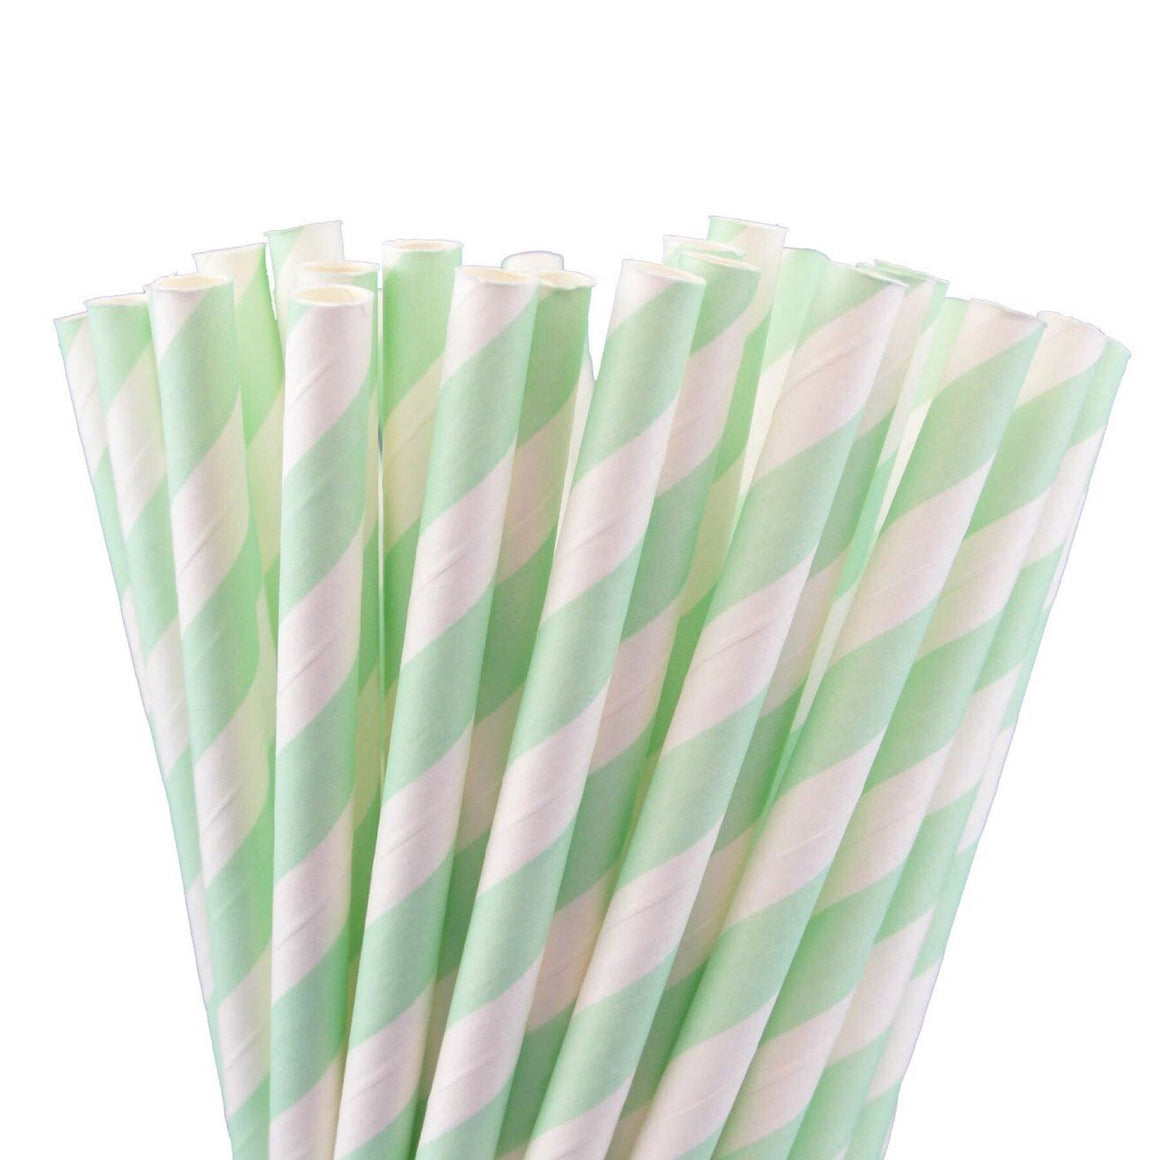 STRAWS - STRIPEY MINT GREEN